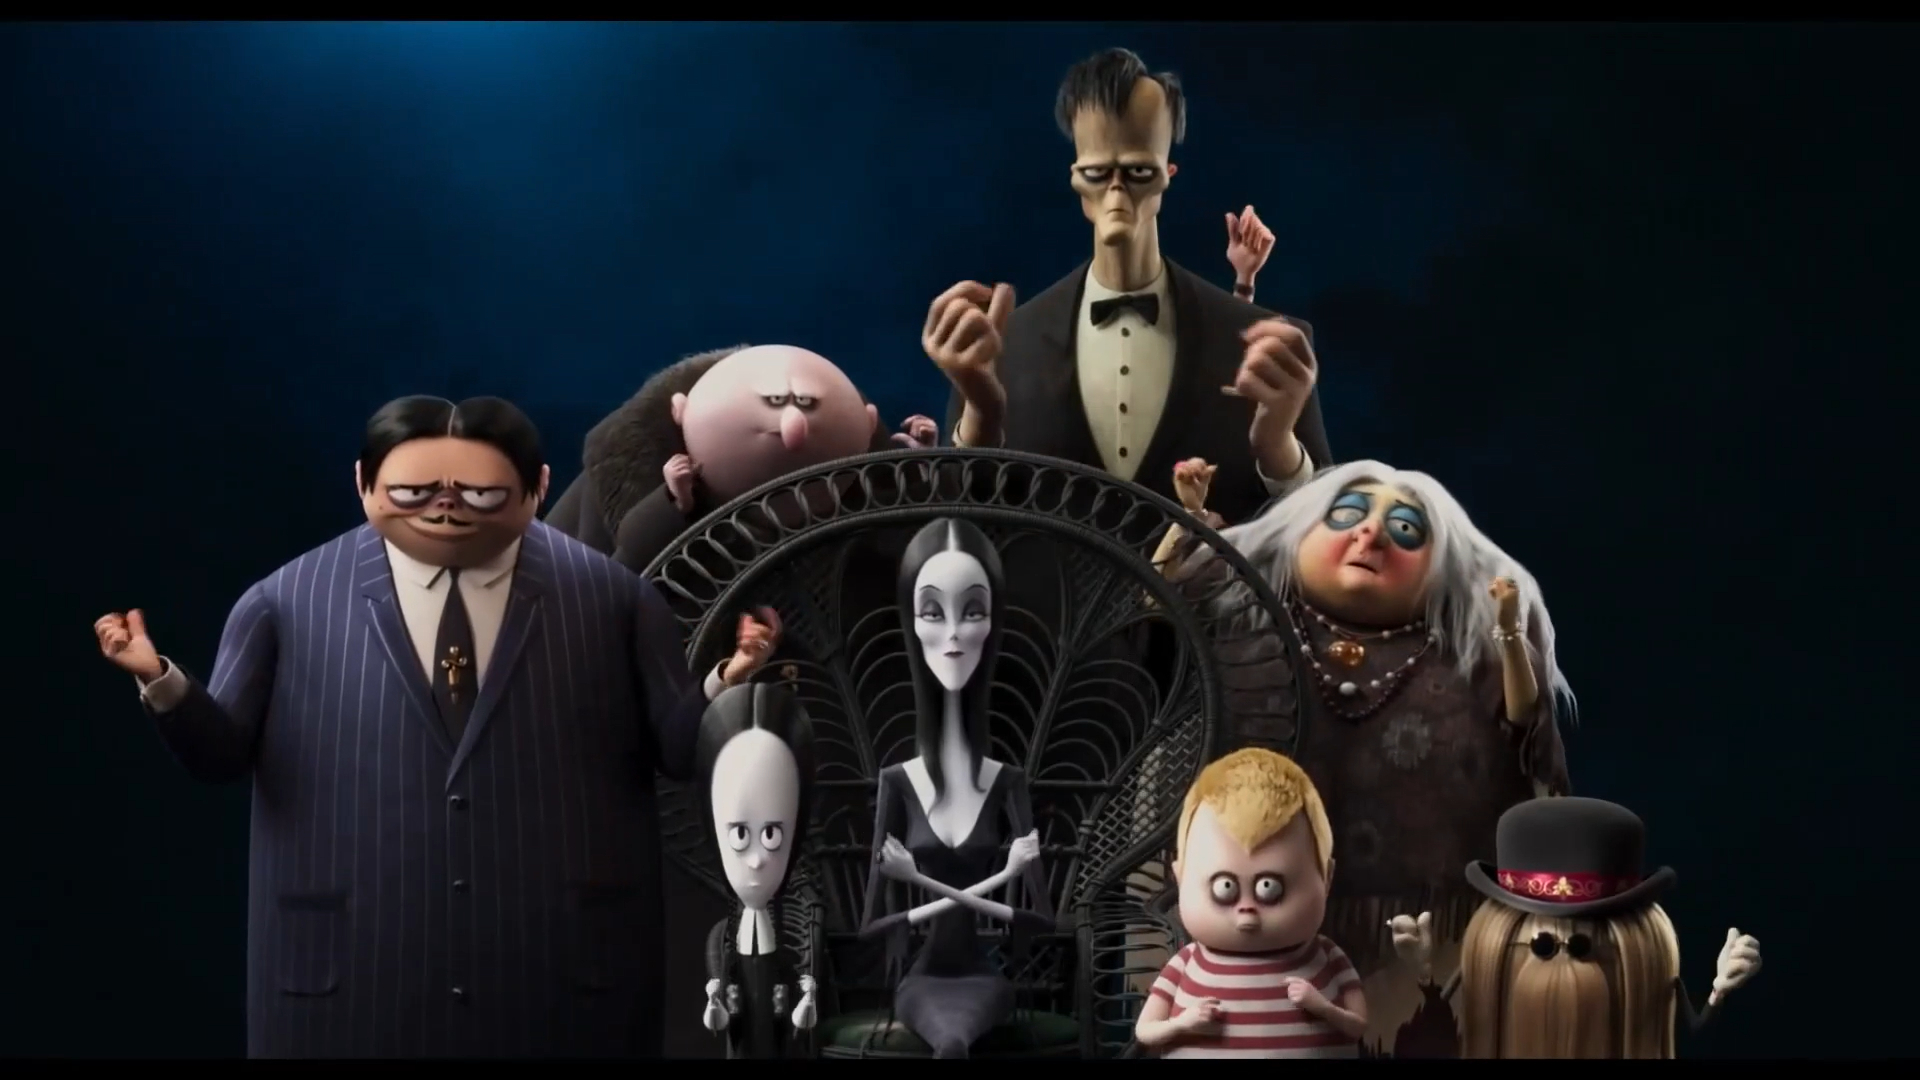 The Addams Family 2' Going Theatrical-PVOD Day & Date – Deadline